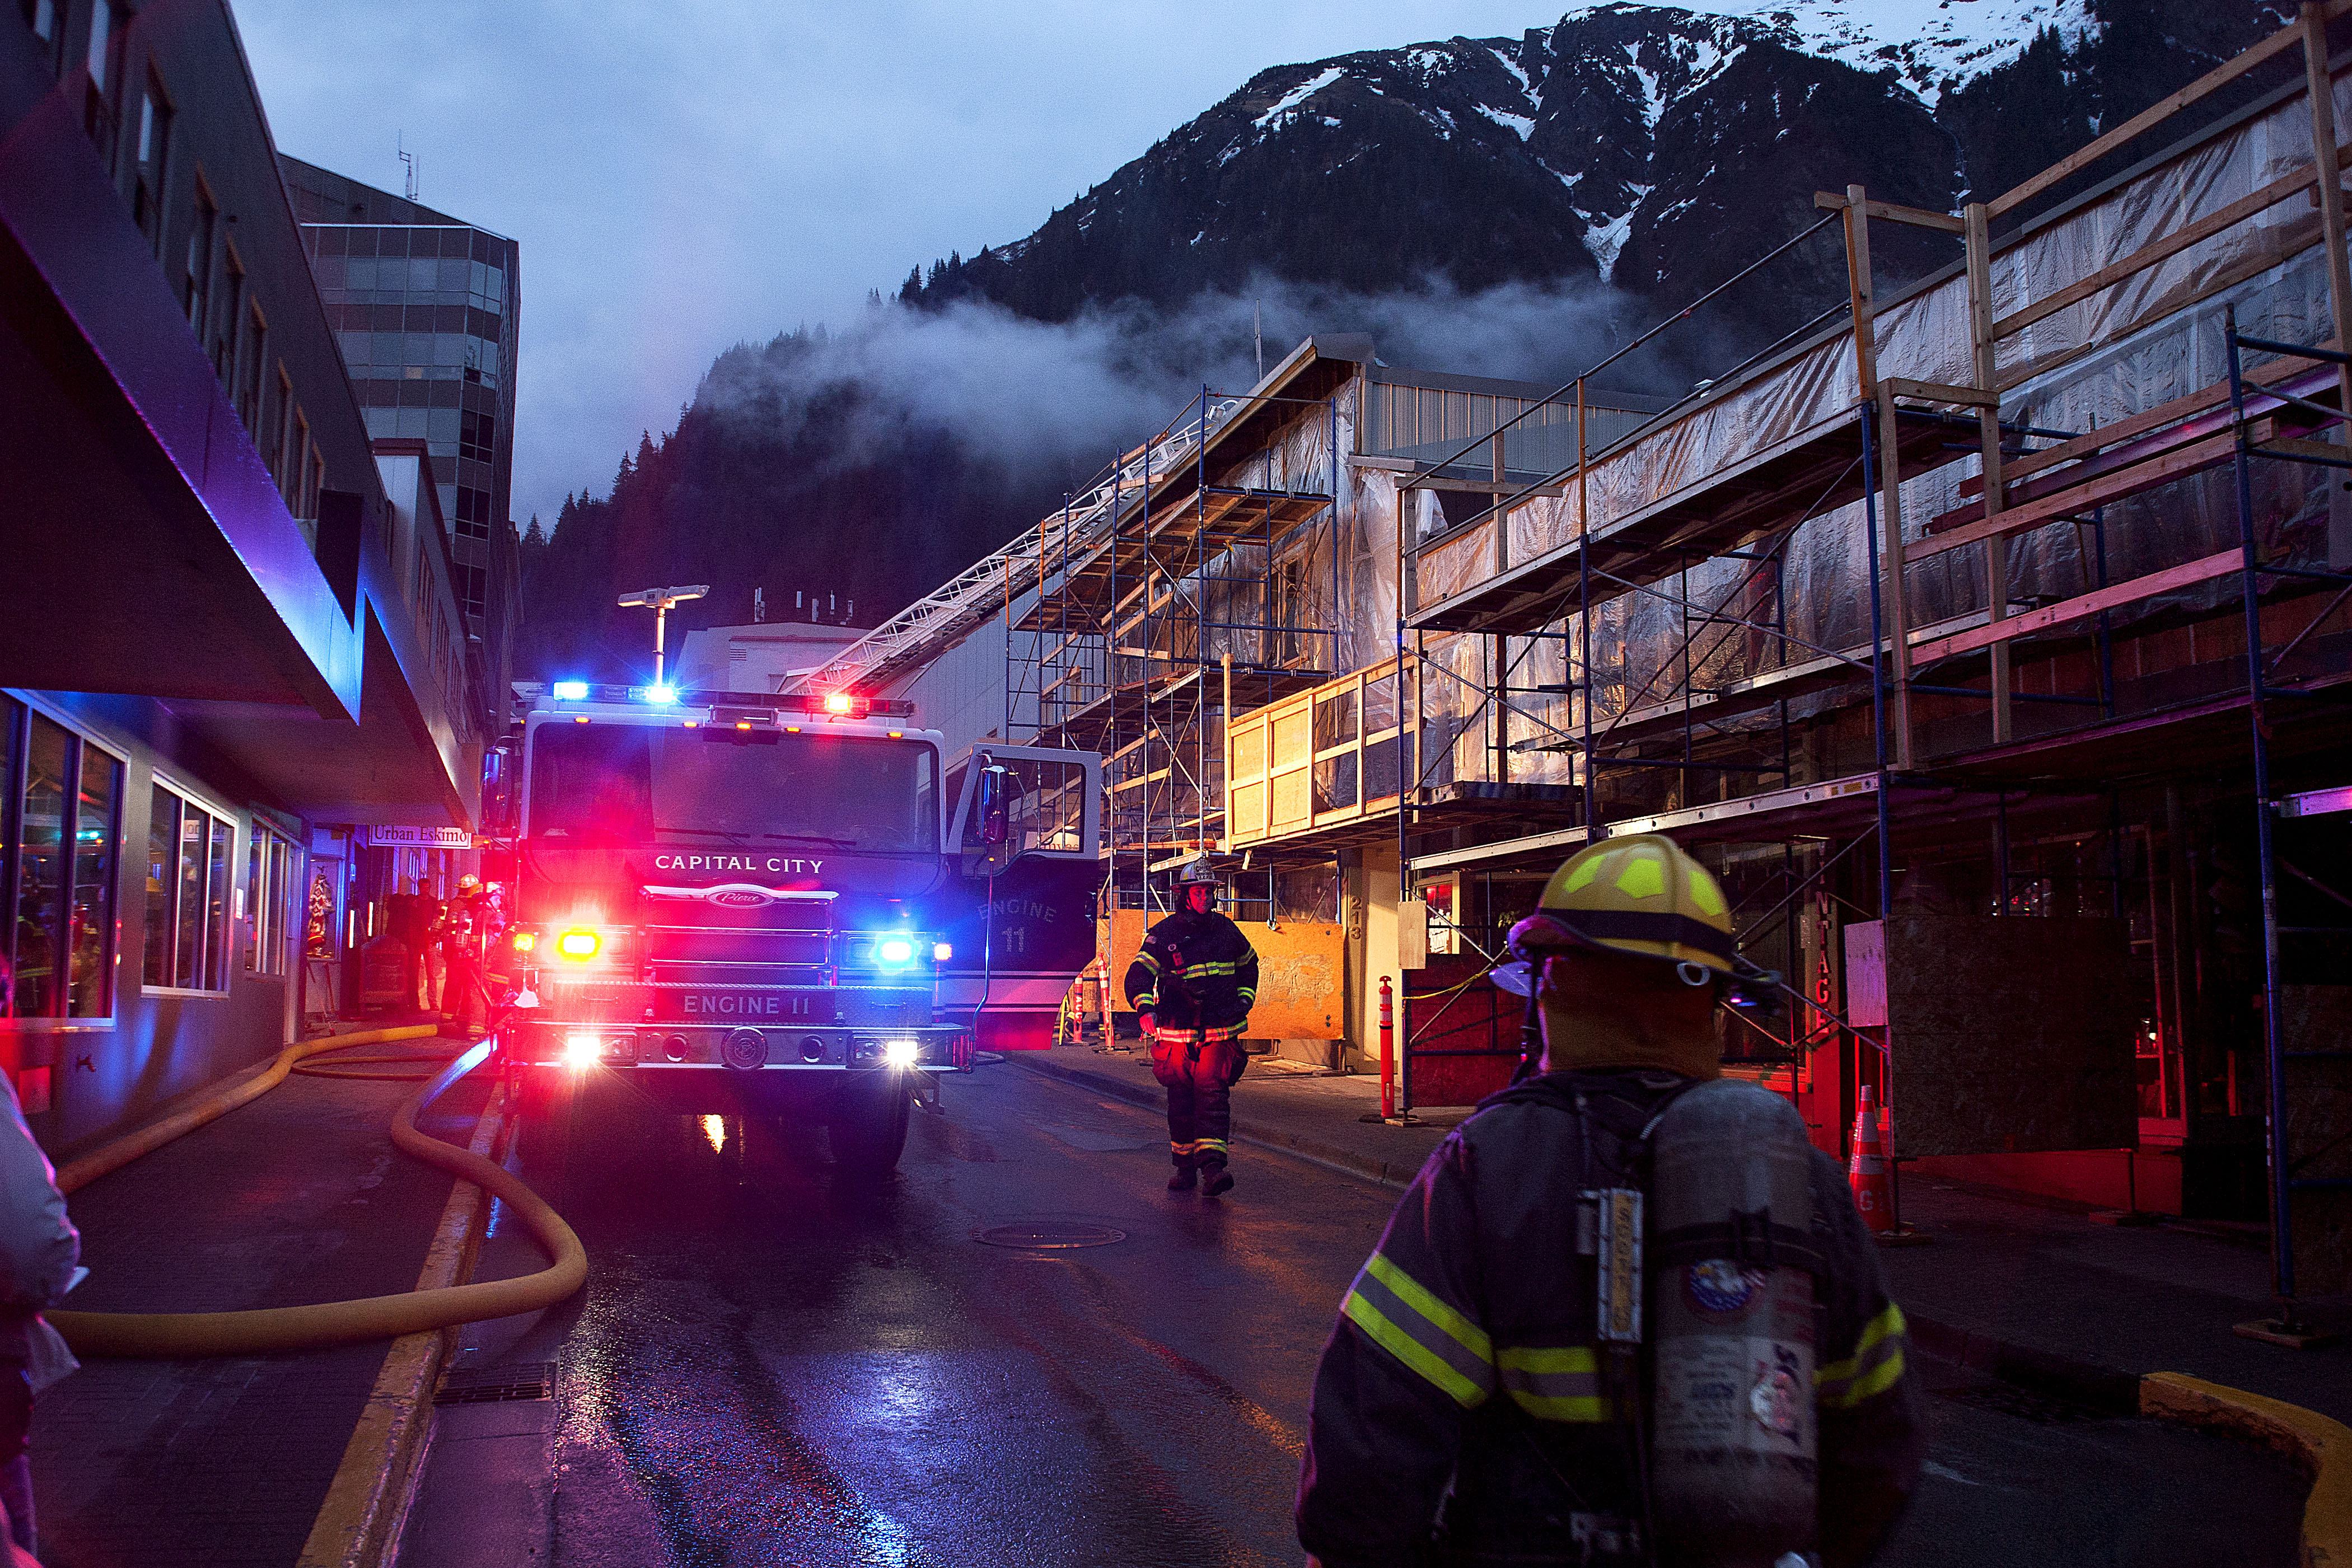 Firefighters and emergency personnel work the scene of a possible fire Saturday night, April 15, 2017, in the 200 block of Seward Street, downtown Juneau. (Photo courtesy of Tripp J Crouse)